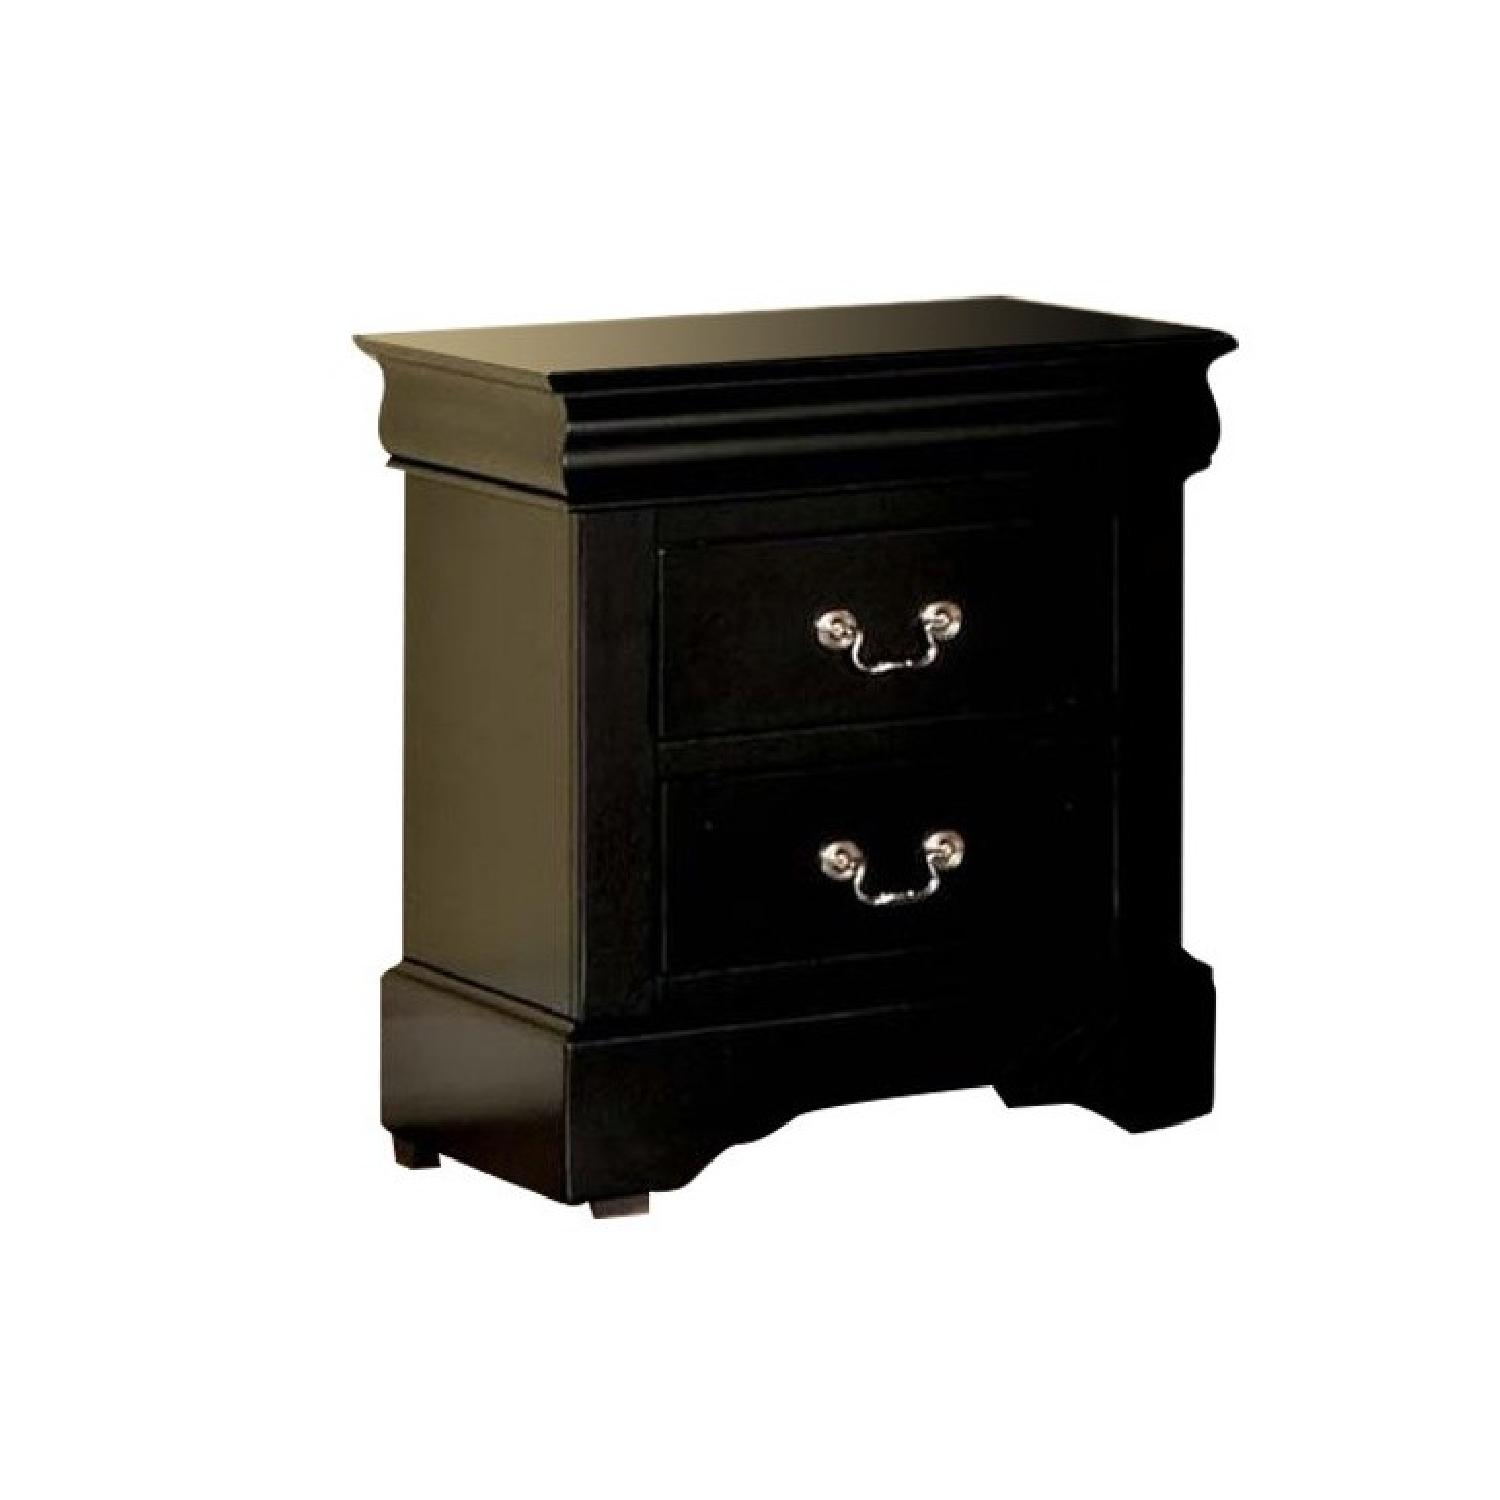 Louis Philippe Style Nightstand in Black Finish